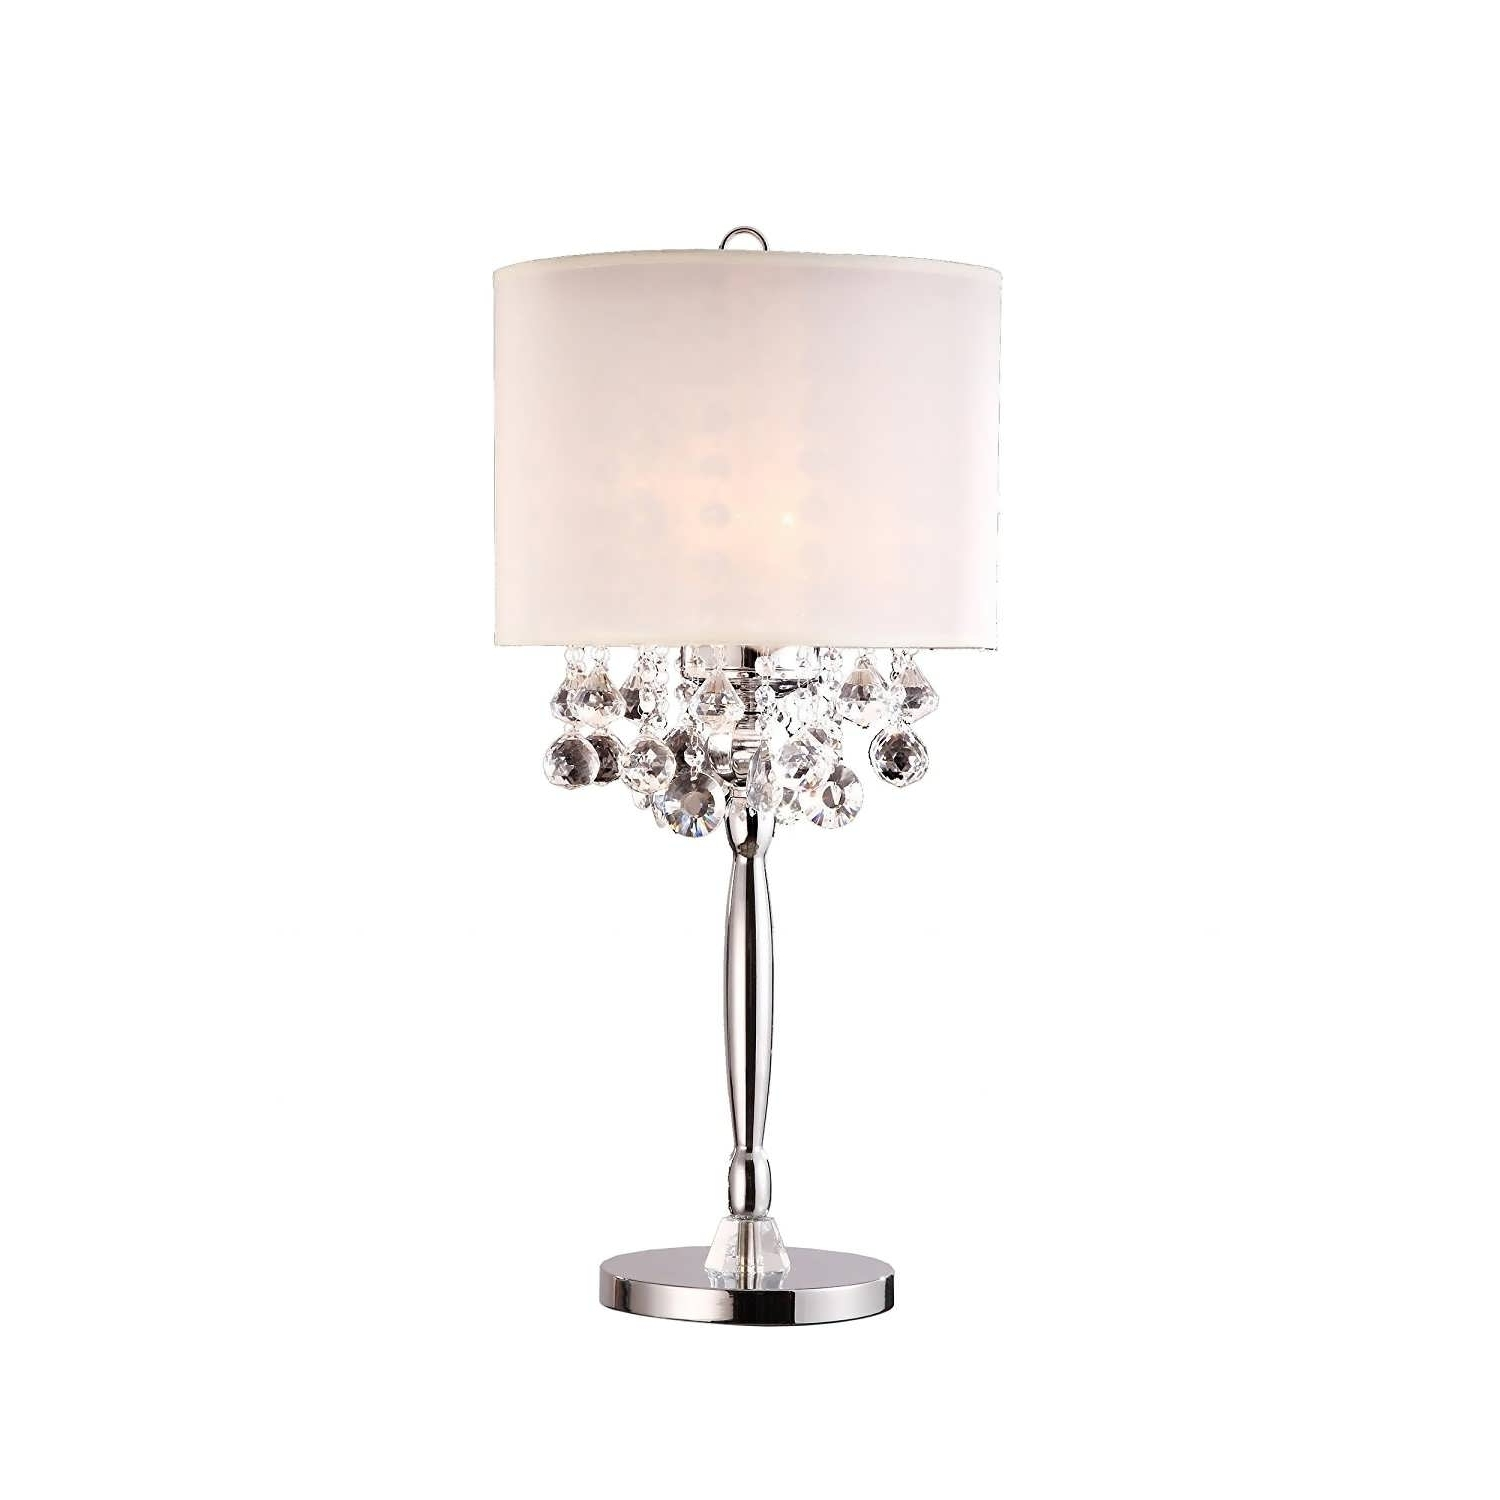 Famous Chandelier : Ceiling Light Fixture Small Table Lamps Crystal Throughout Small Crystal Chandelier Table Lamps (View 4 of 20)